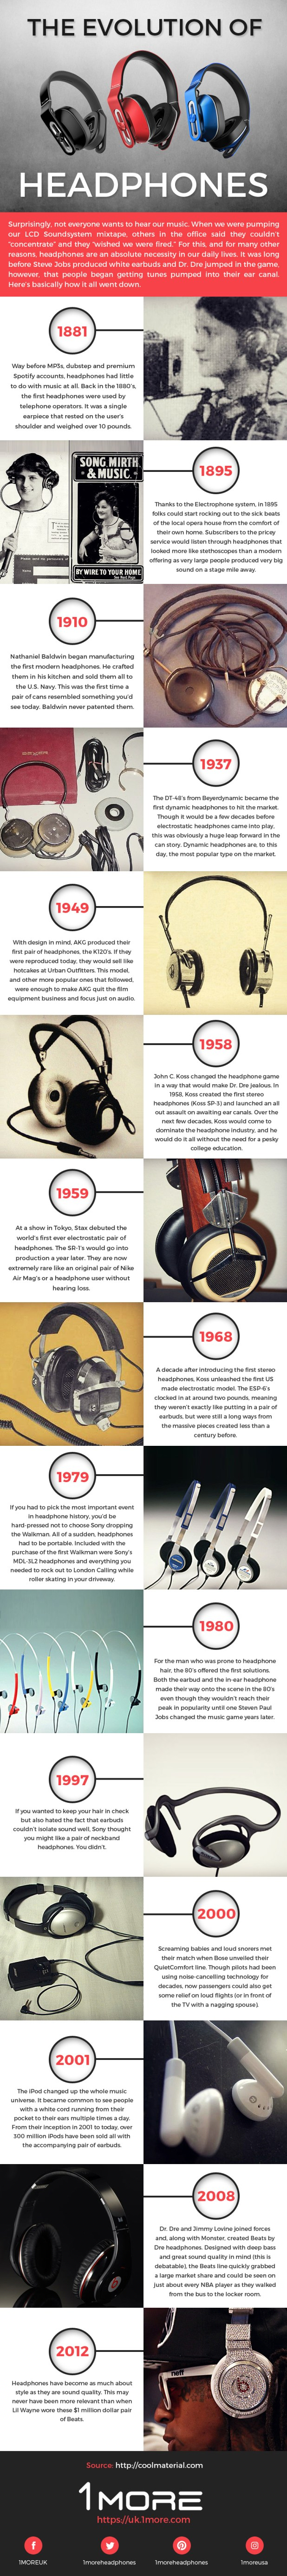 The Evolution of Headphones [Infographic]